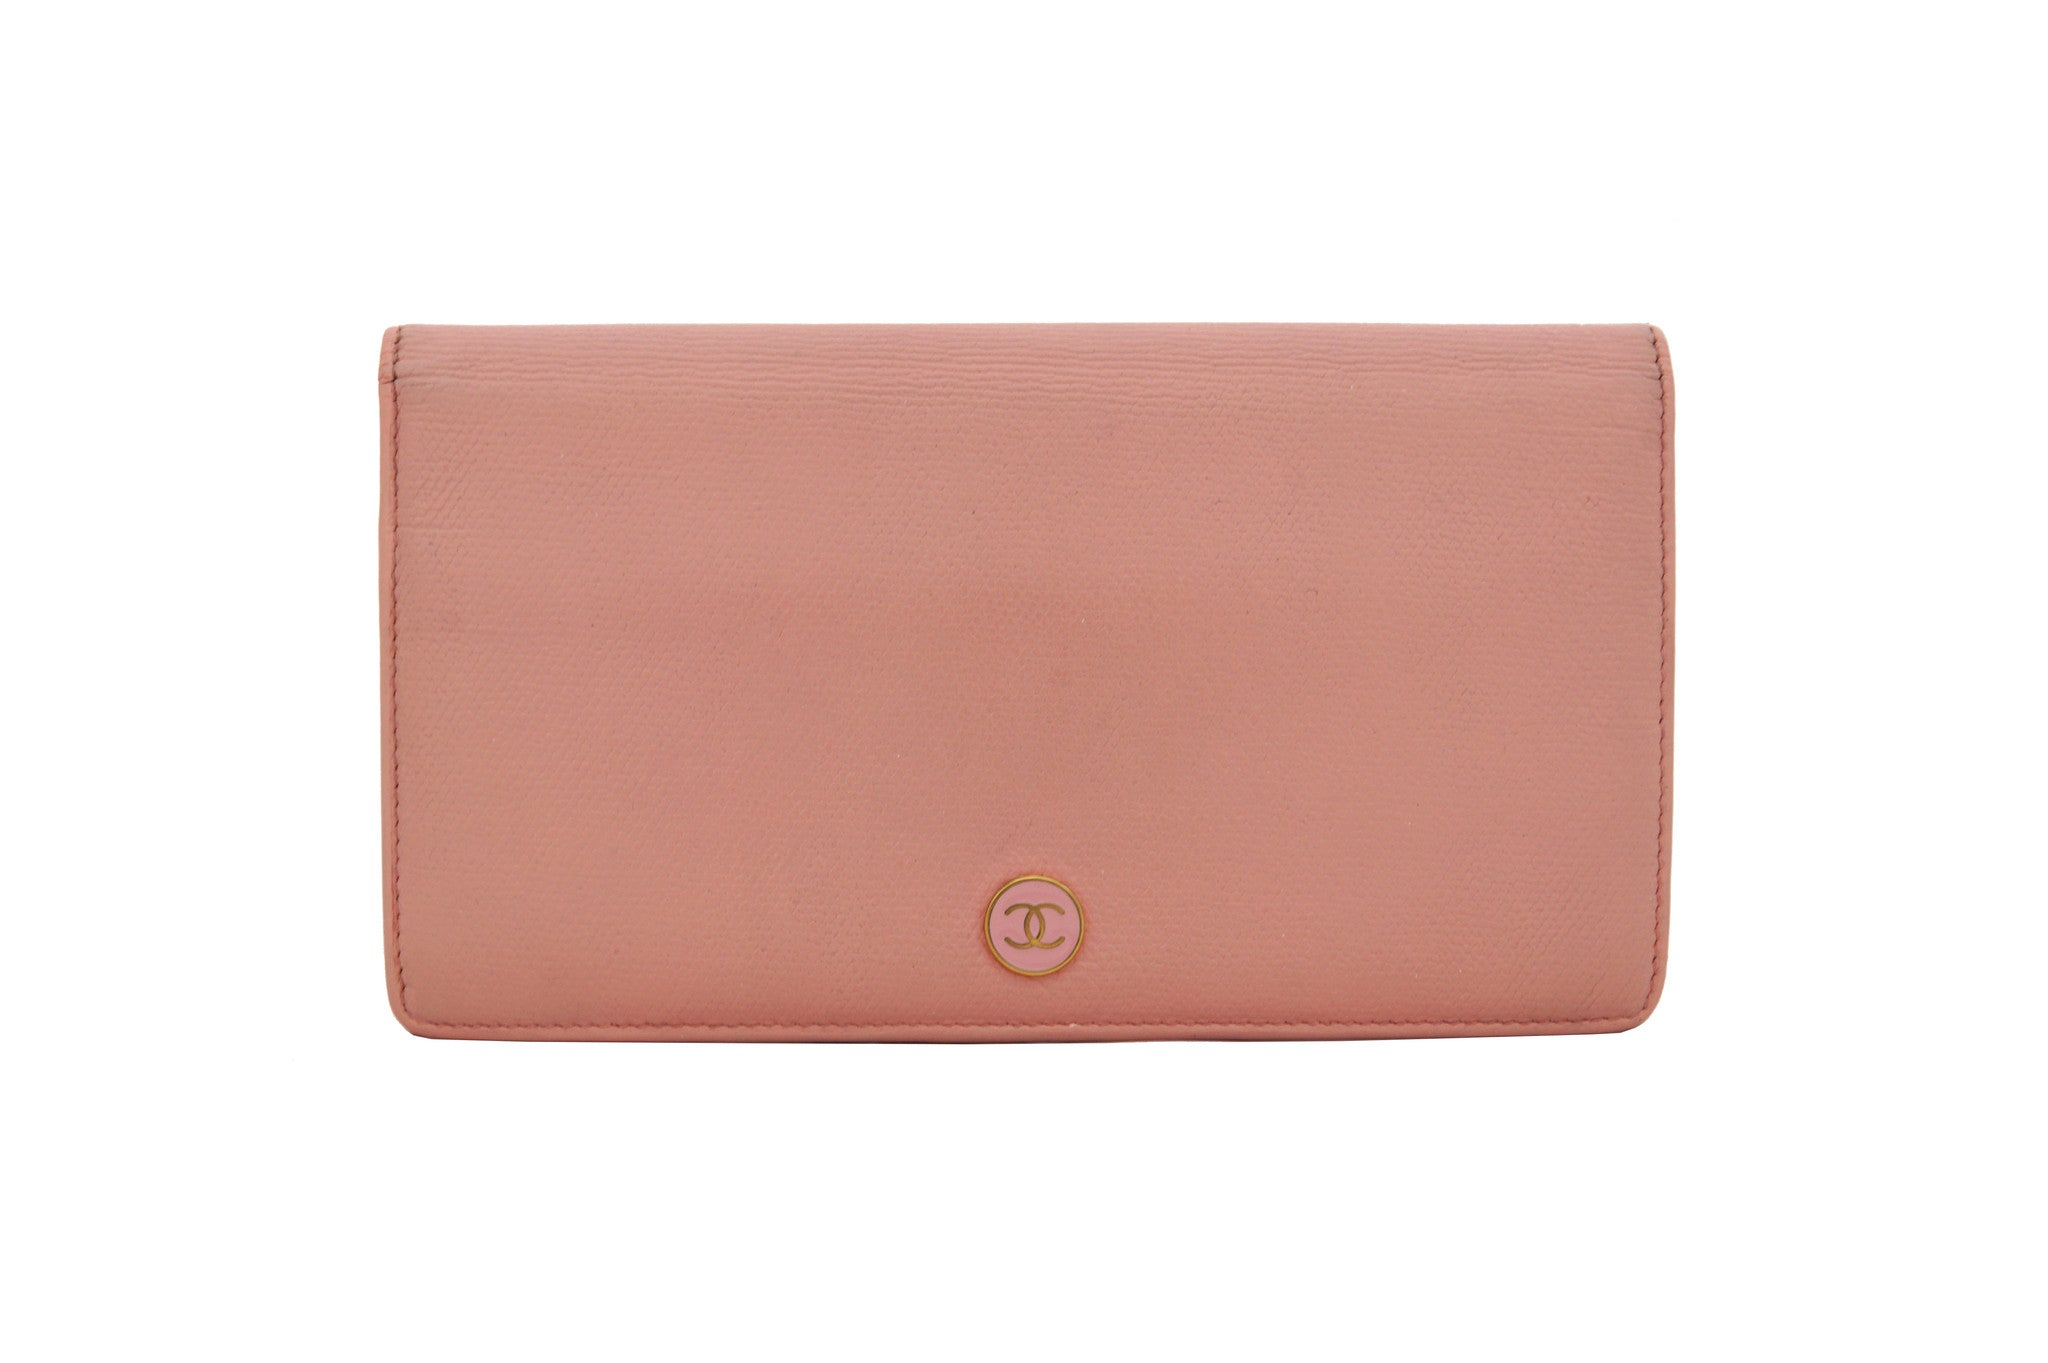 2919c9f74363 Chanel Pink Wallet Vintage | Stanford Center for Opportunity Policy ...